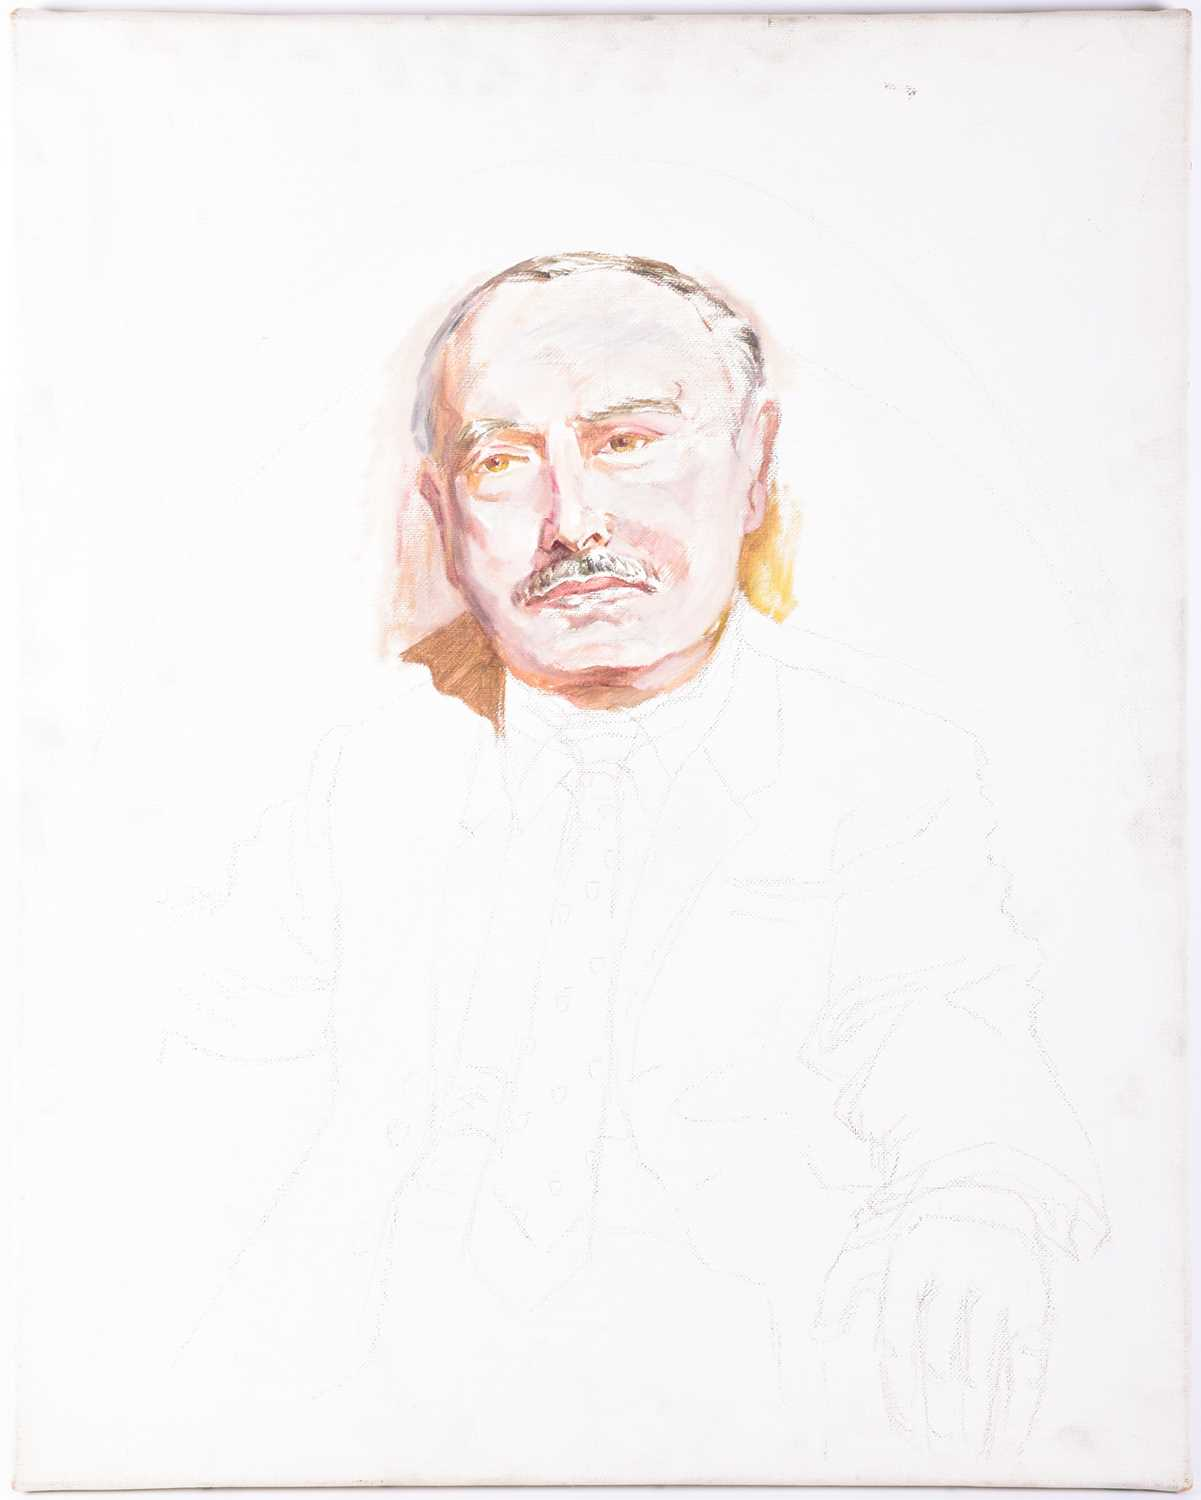 Lot 3 - Franco Matania (1922-2016), an unfinished portrait of the artist Fortunino Matania, oil on canvas,